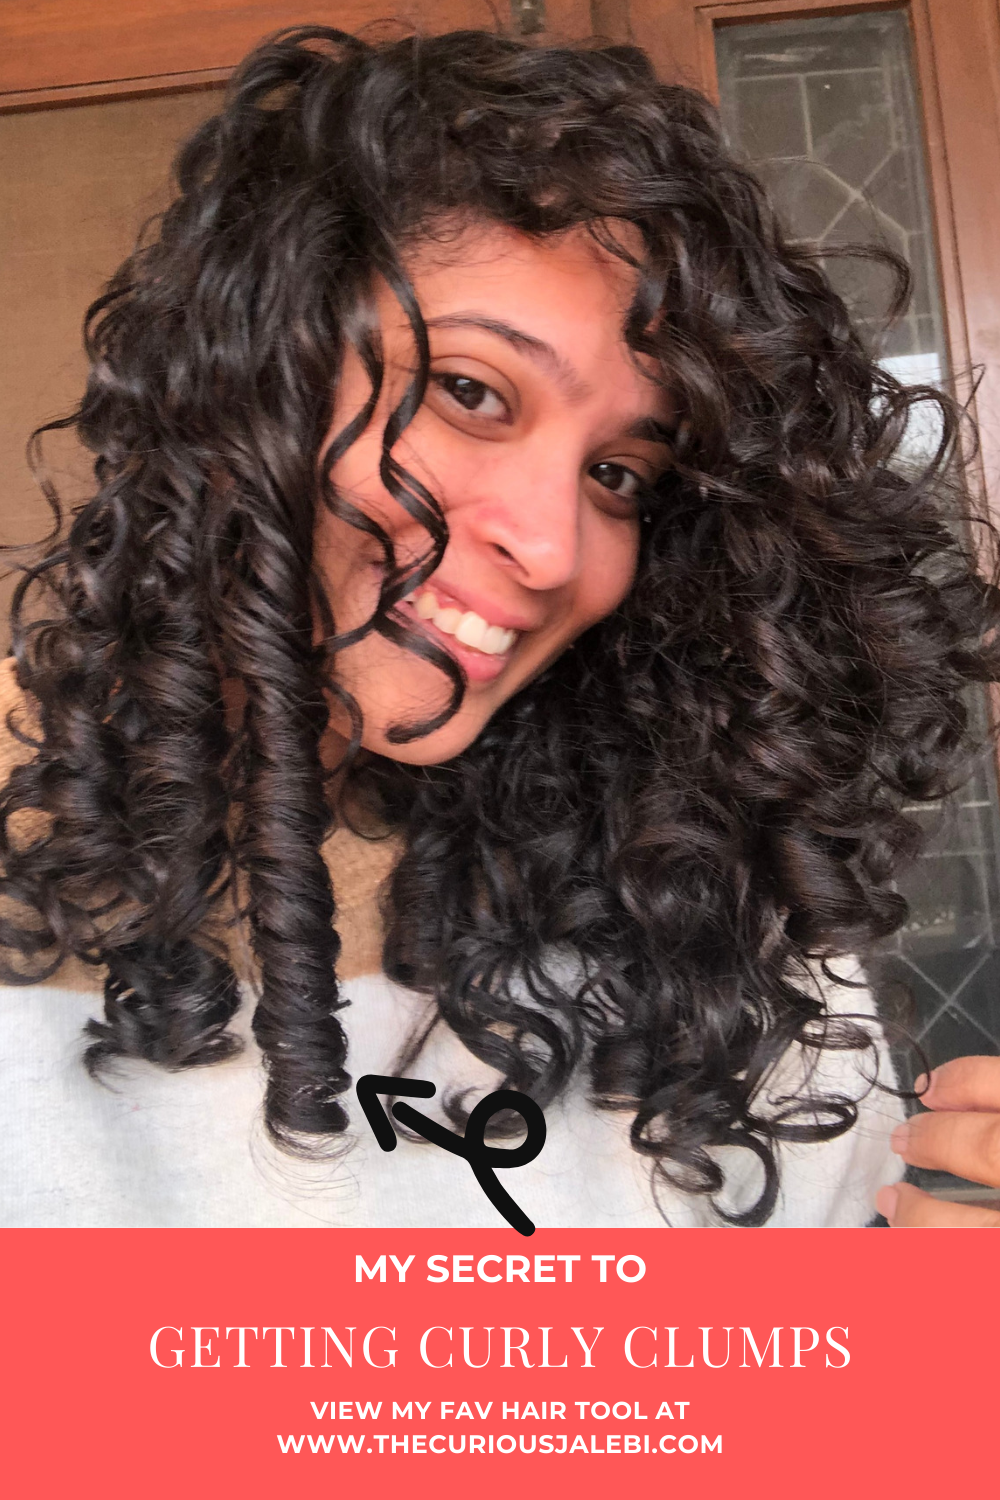 Denman Brush - My New Styling Essential For Curly Hair in 2020 | Long natural curly hair, Curly ...